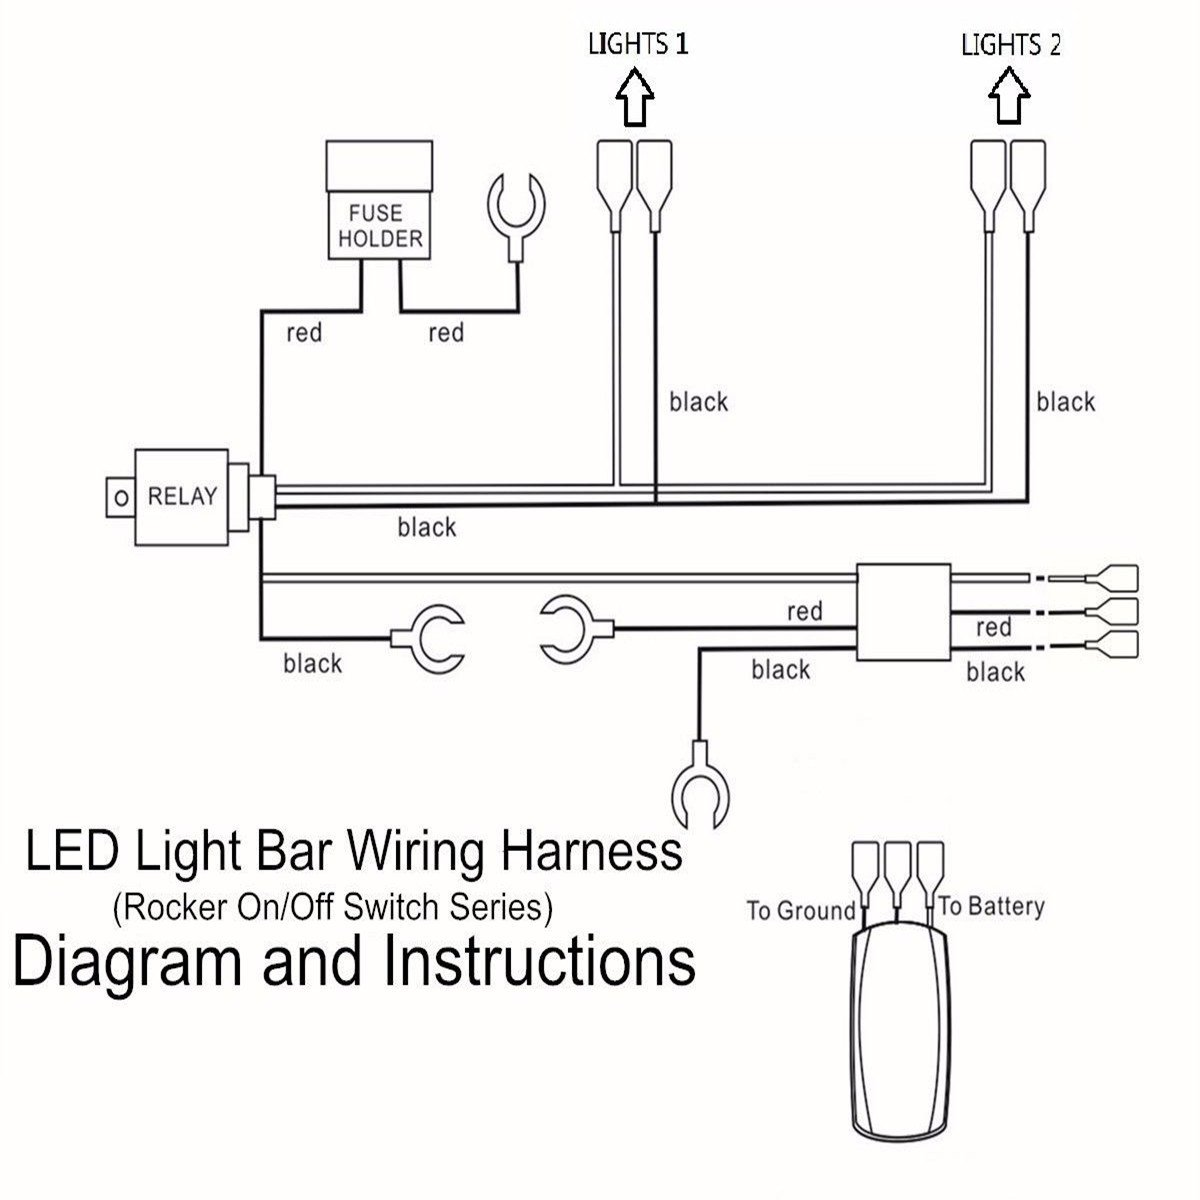 Truck Light Bar Wiring Harness Diagram from i5.walmartimages.com